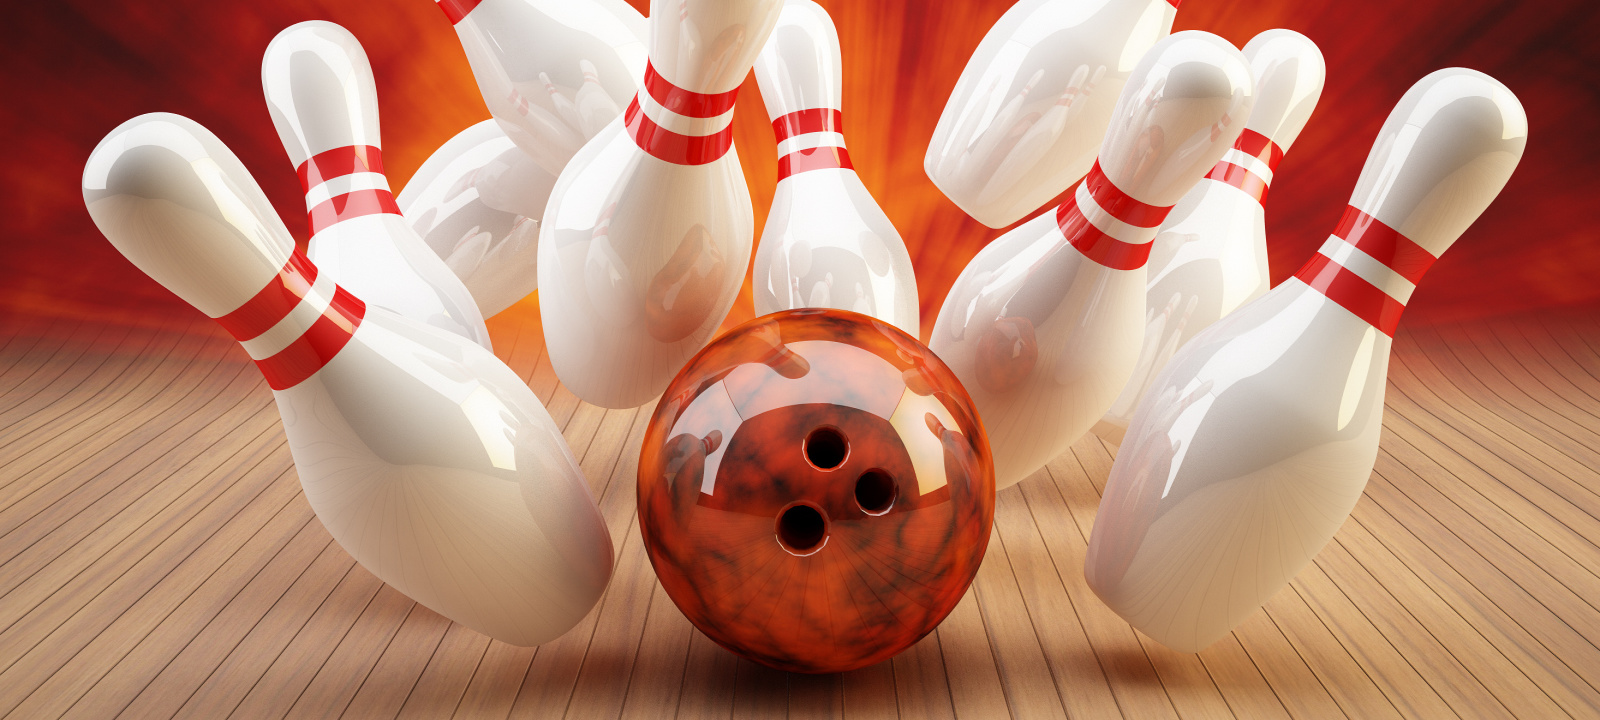 Bowling is among stunning Easiest Sports 2017